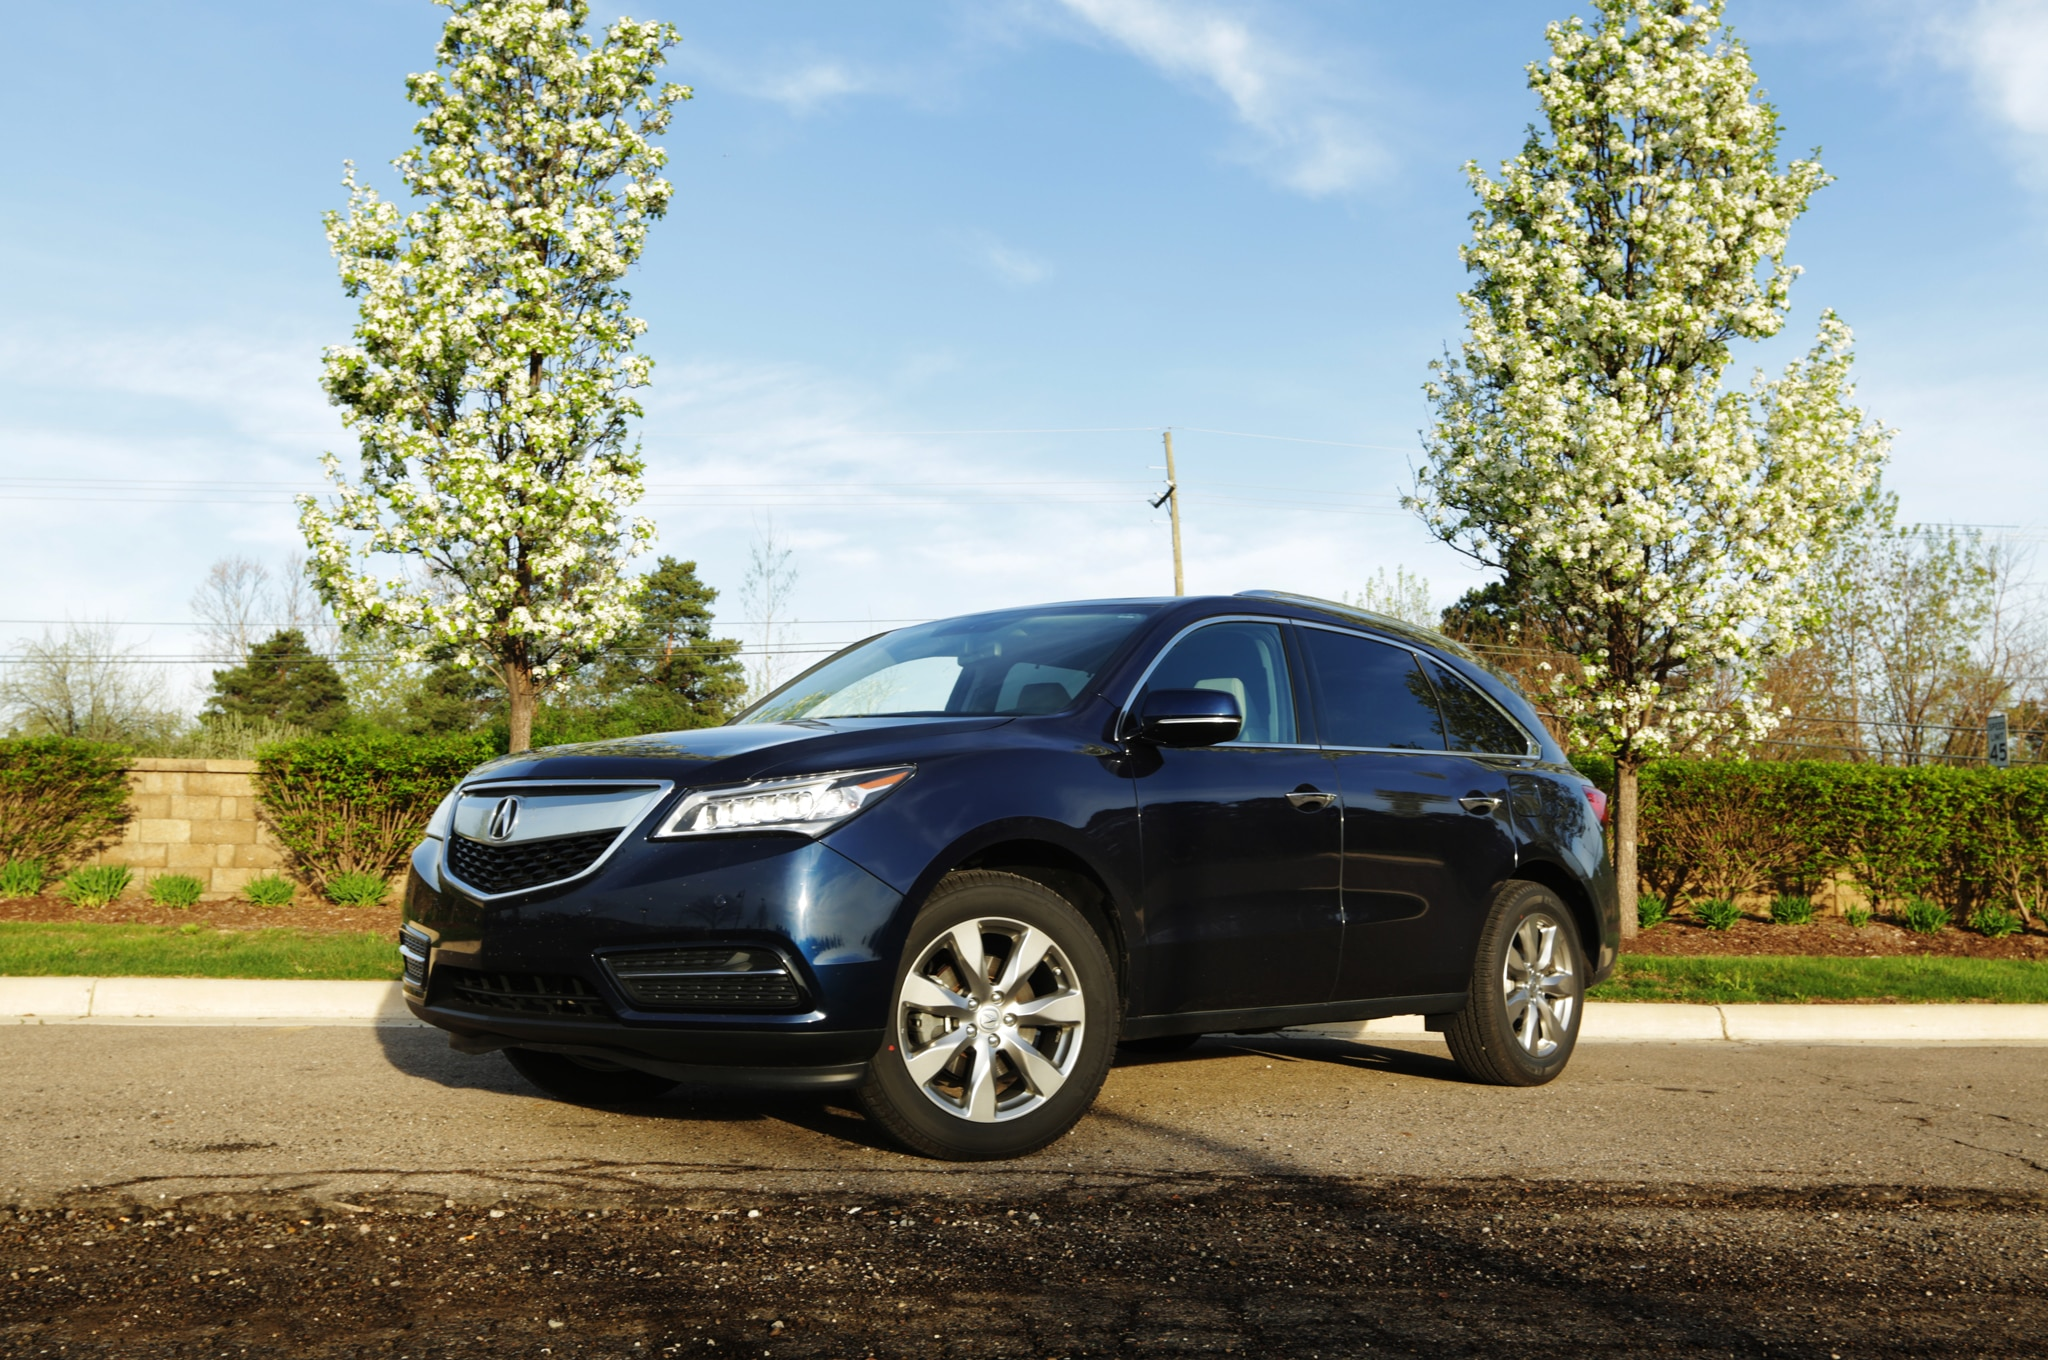 Acura MDX SHAWD Mixed Feelings And Service - Acura mdx b16 service cost